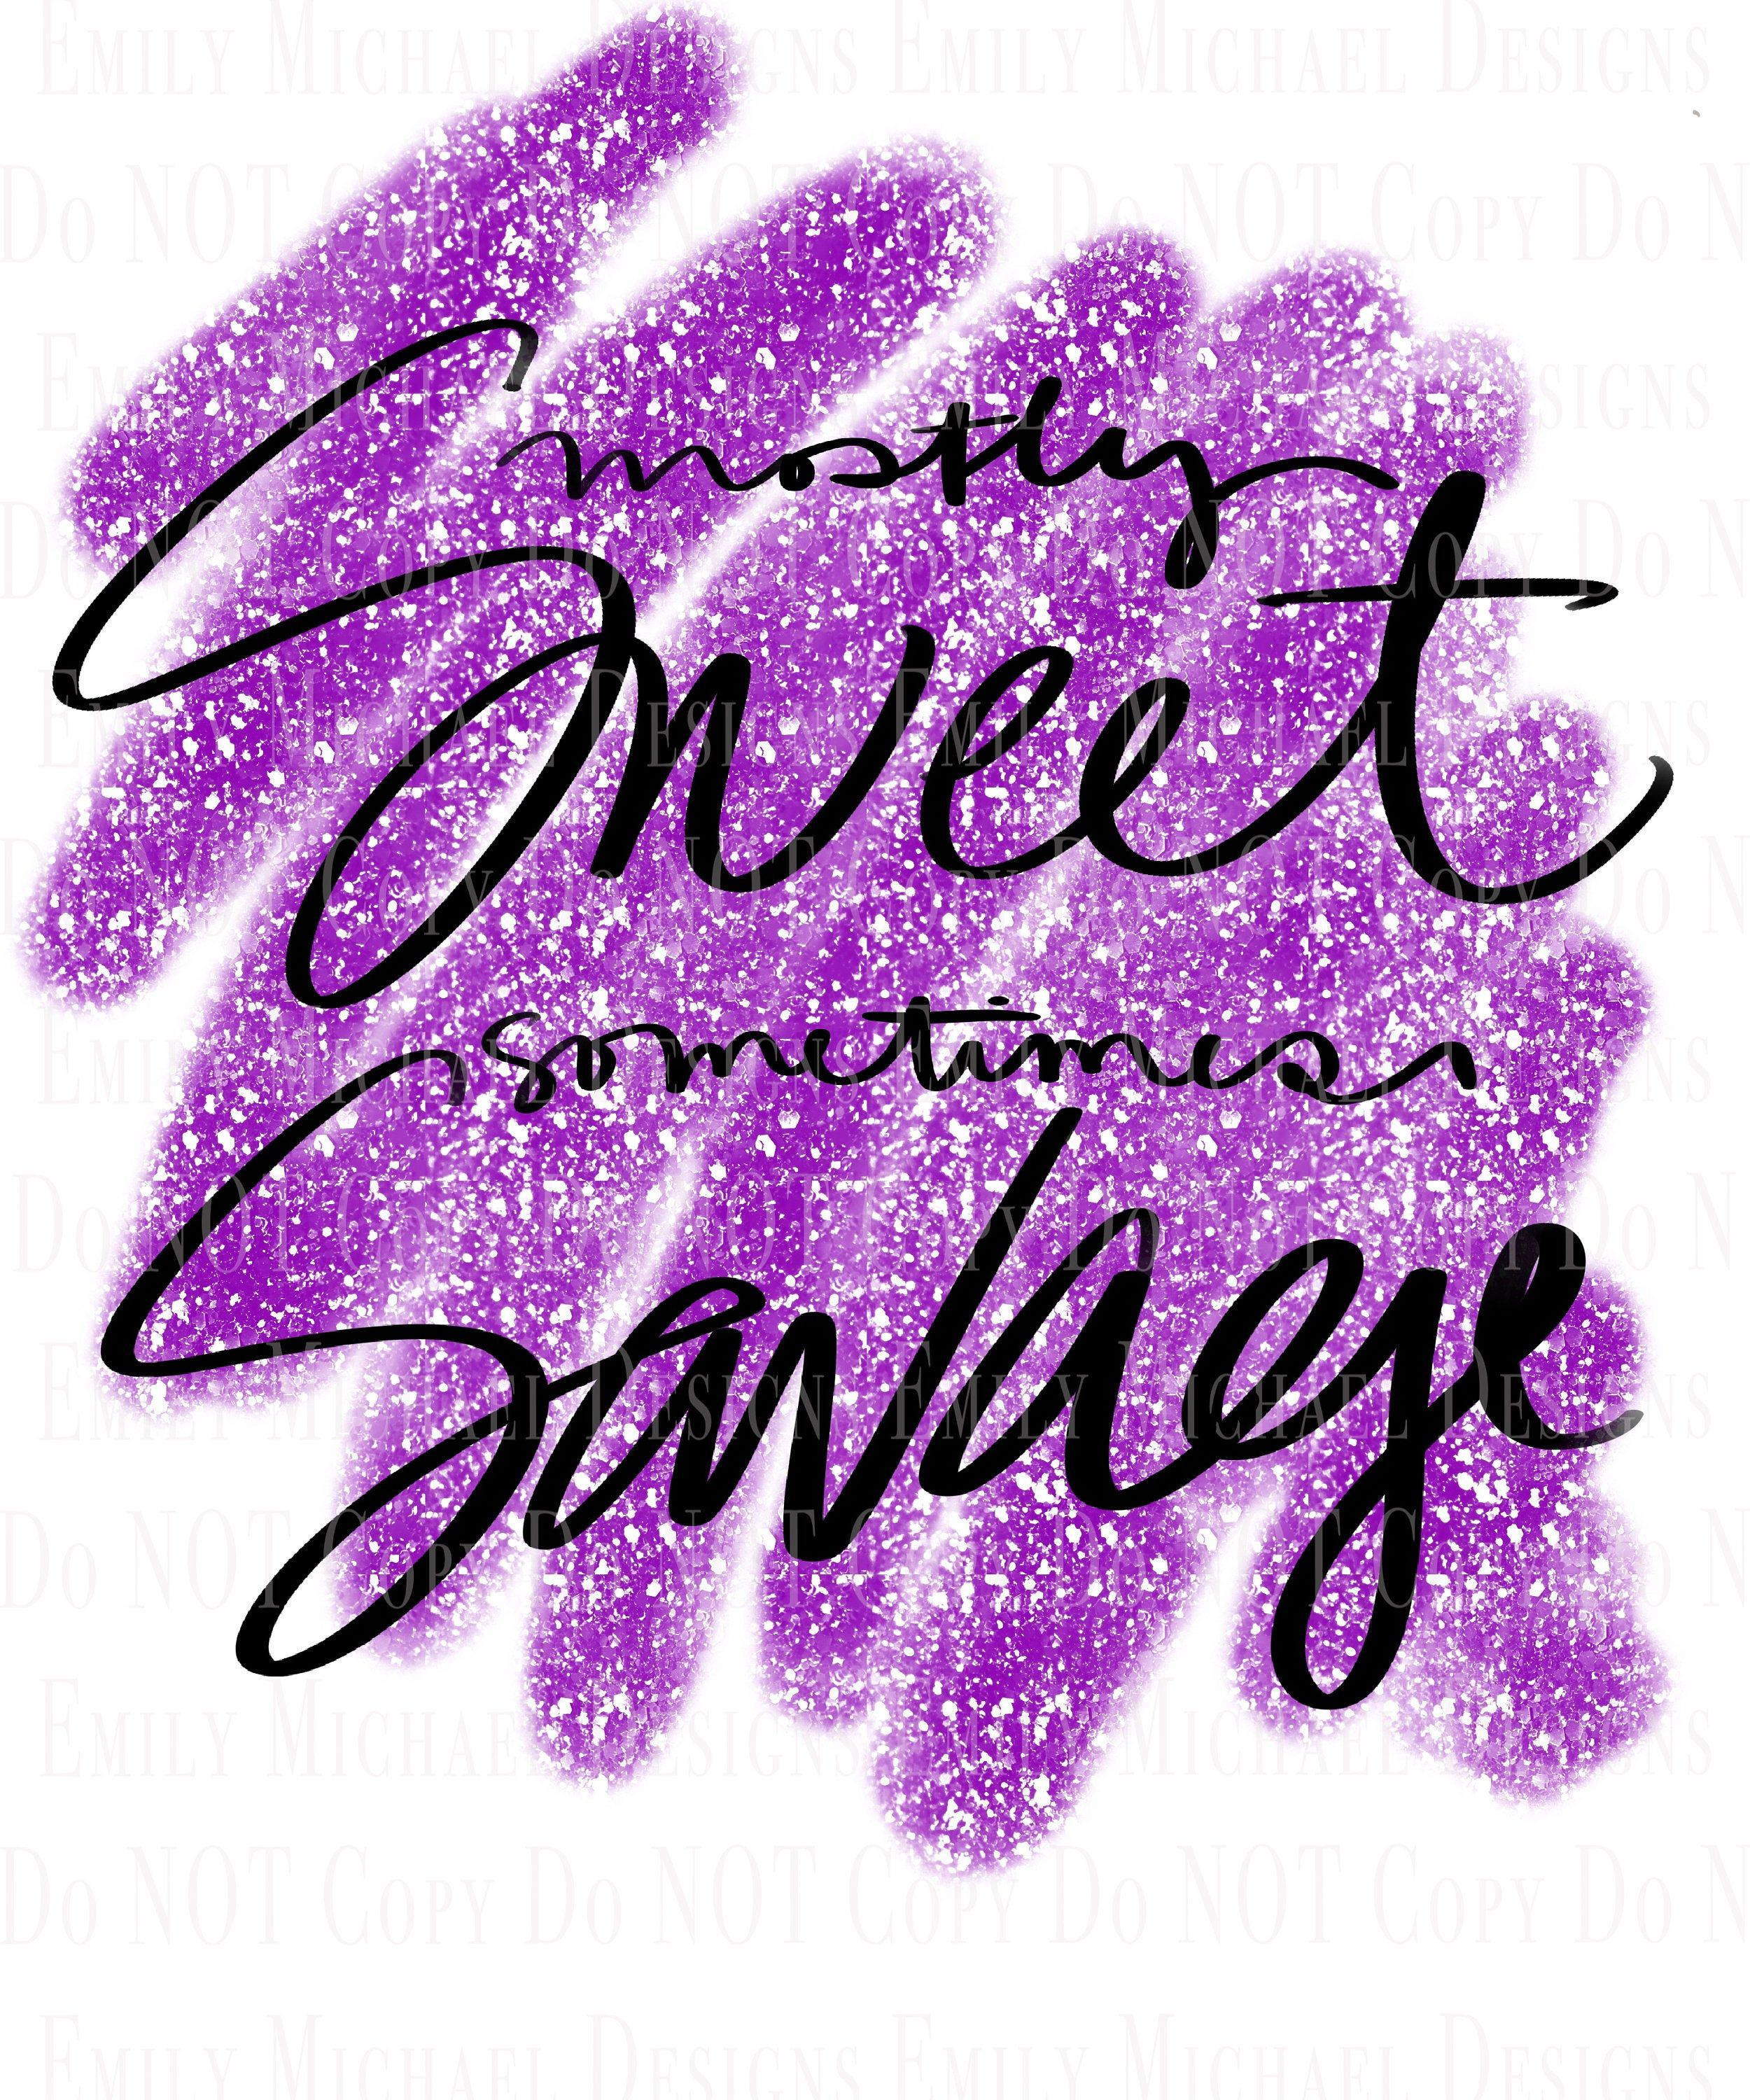 Mostly Sweet Sometimes Savage Digital Download Image Purple Glitter Sublimation Png Sparkle Sweet Digital Image Purple Glitter Digital Image Print Gifts